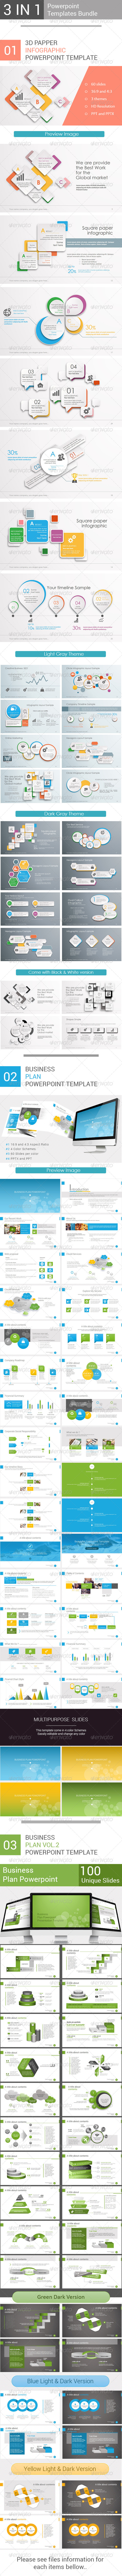 GraphicRiver 3 In 1 Powerpoint Templates Collection Bundle 8423477